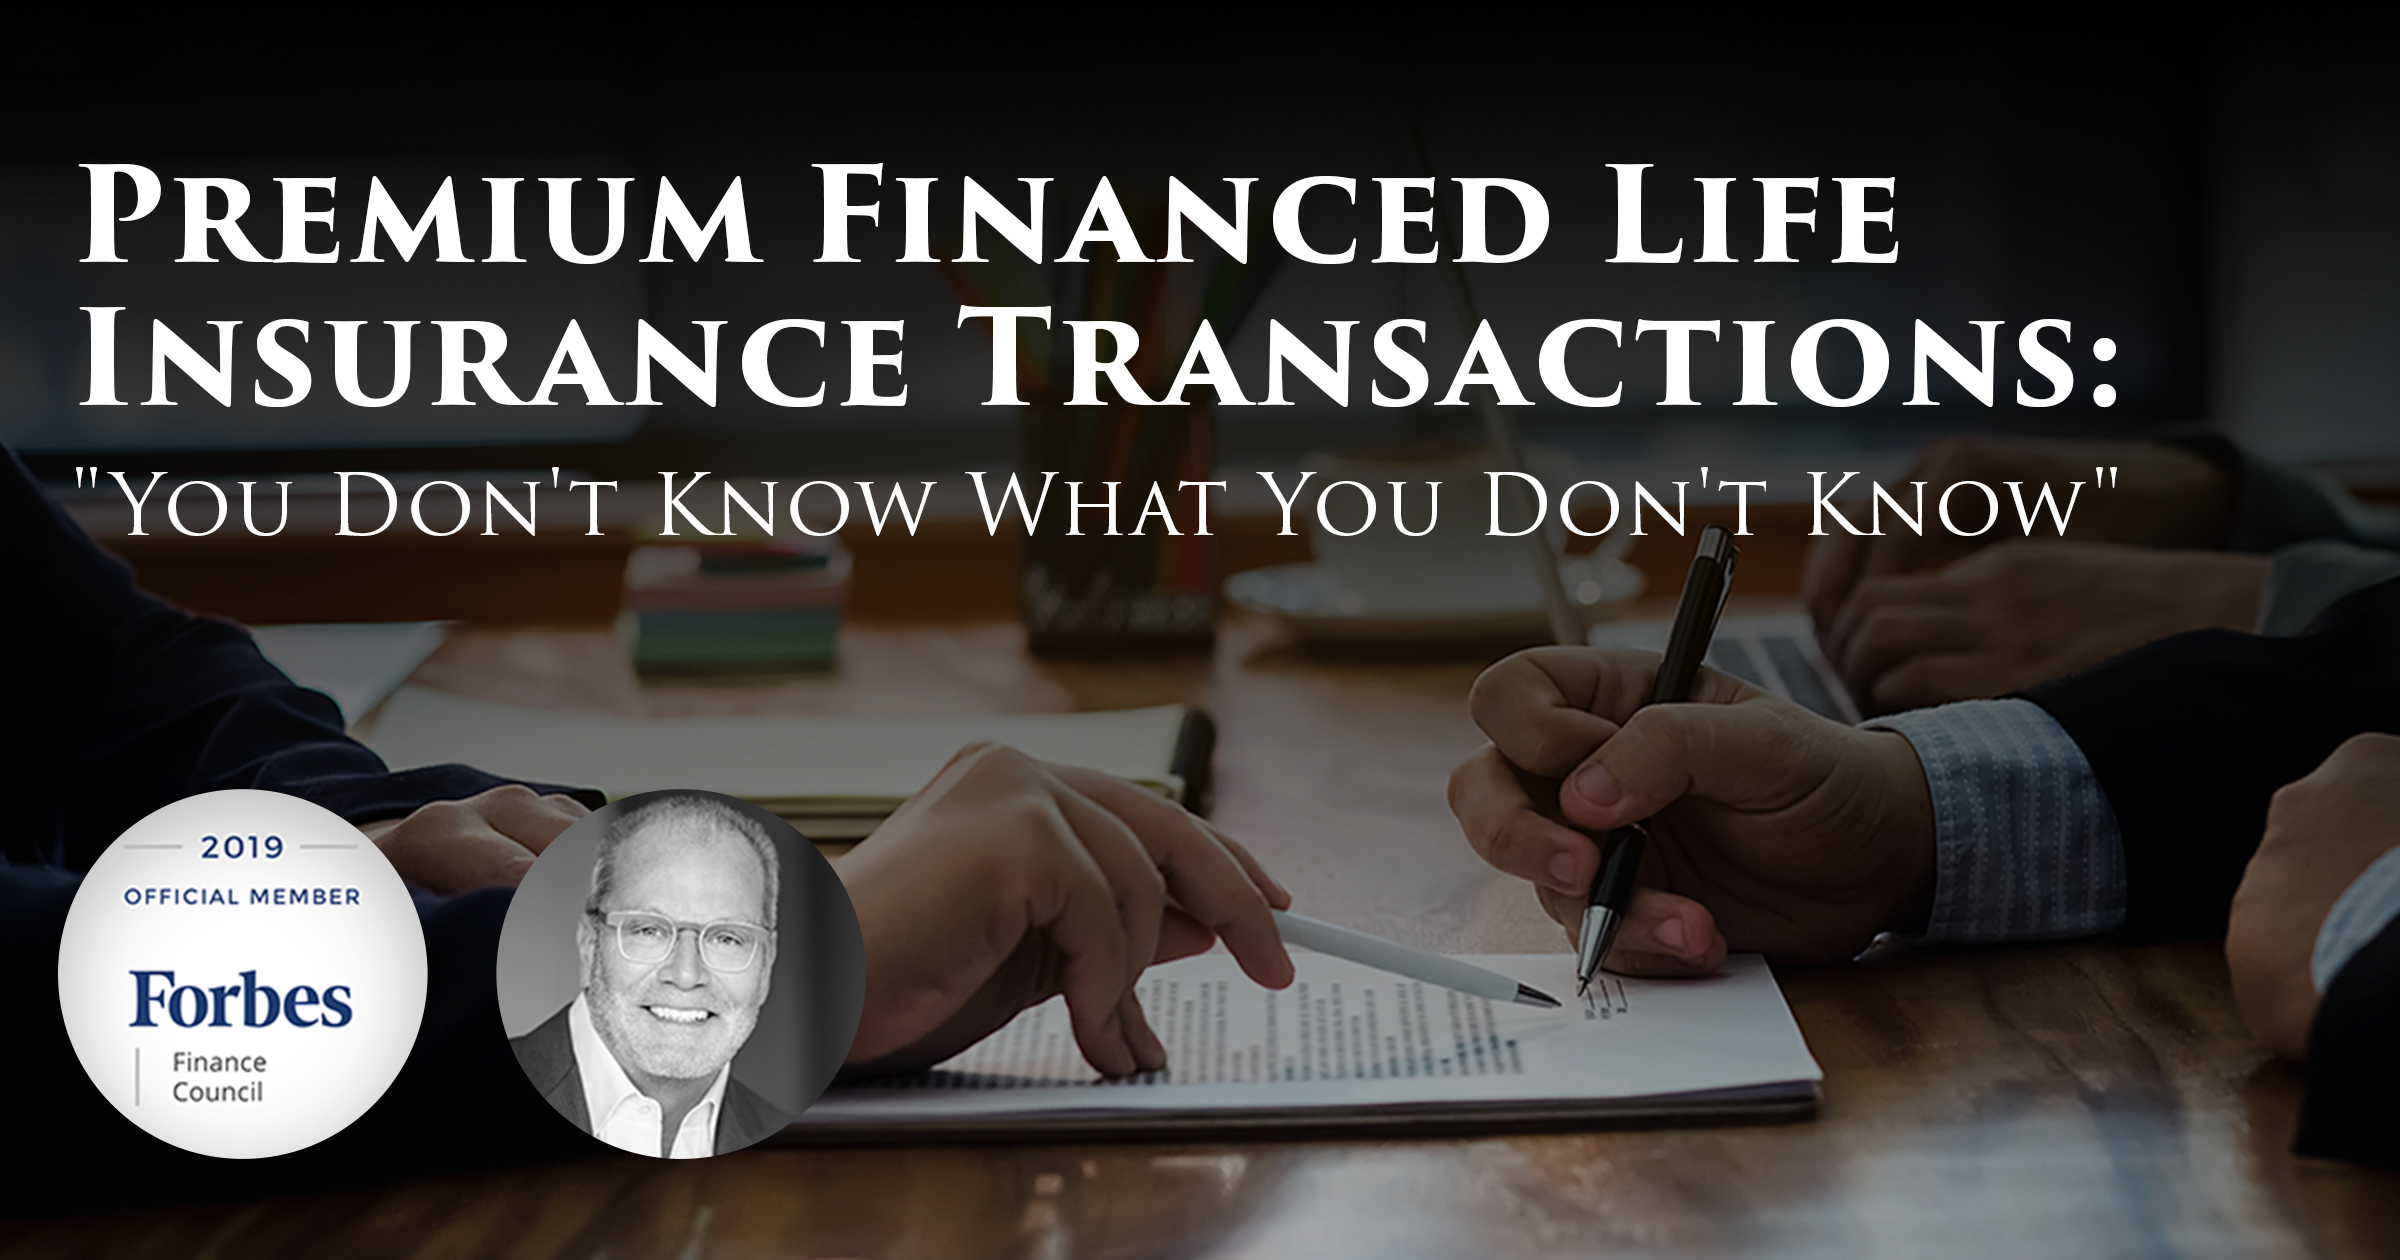 Premium Financed Life Insurance Transactions: You Don't Know What You Don't Know